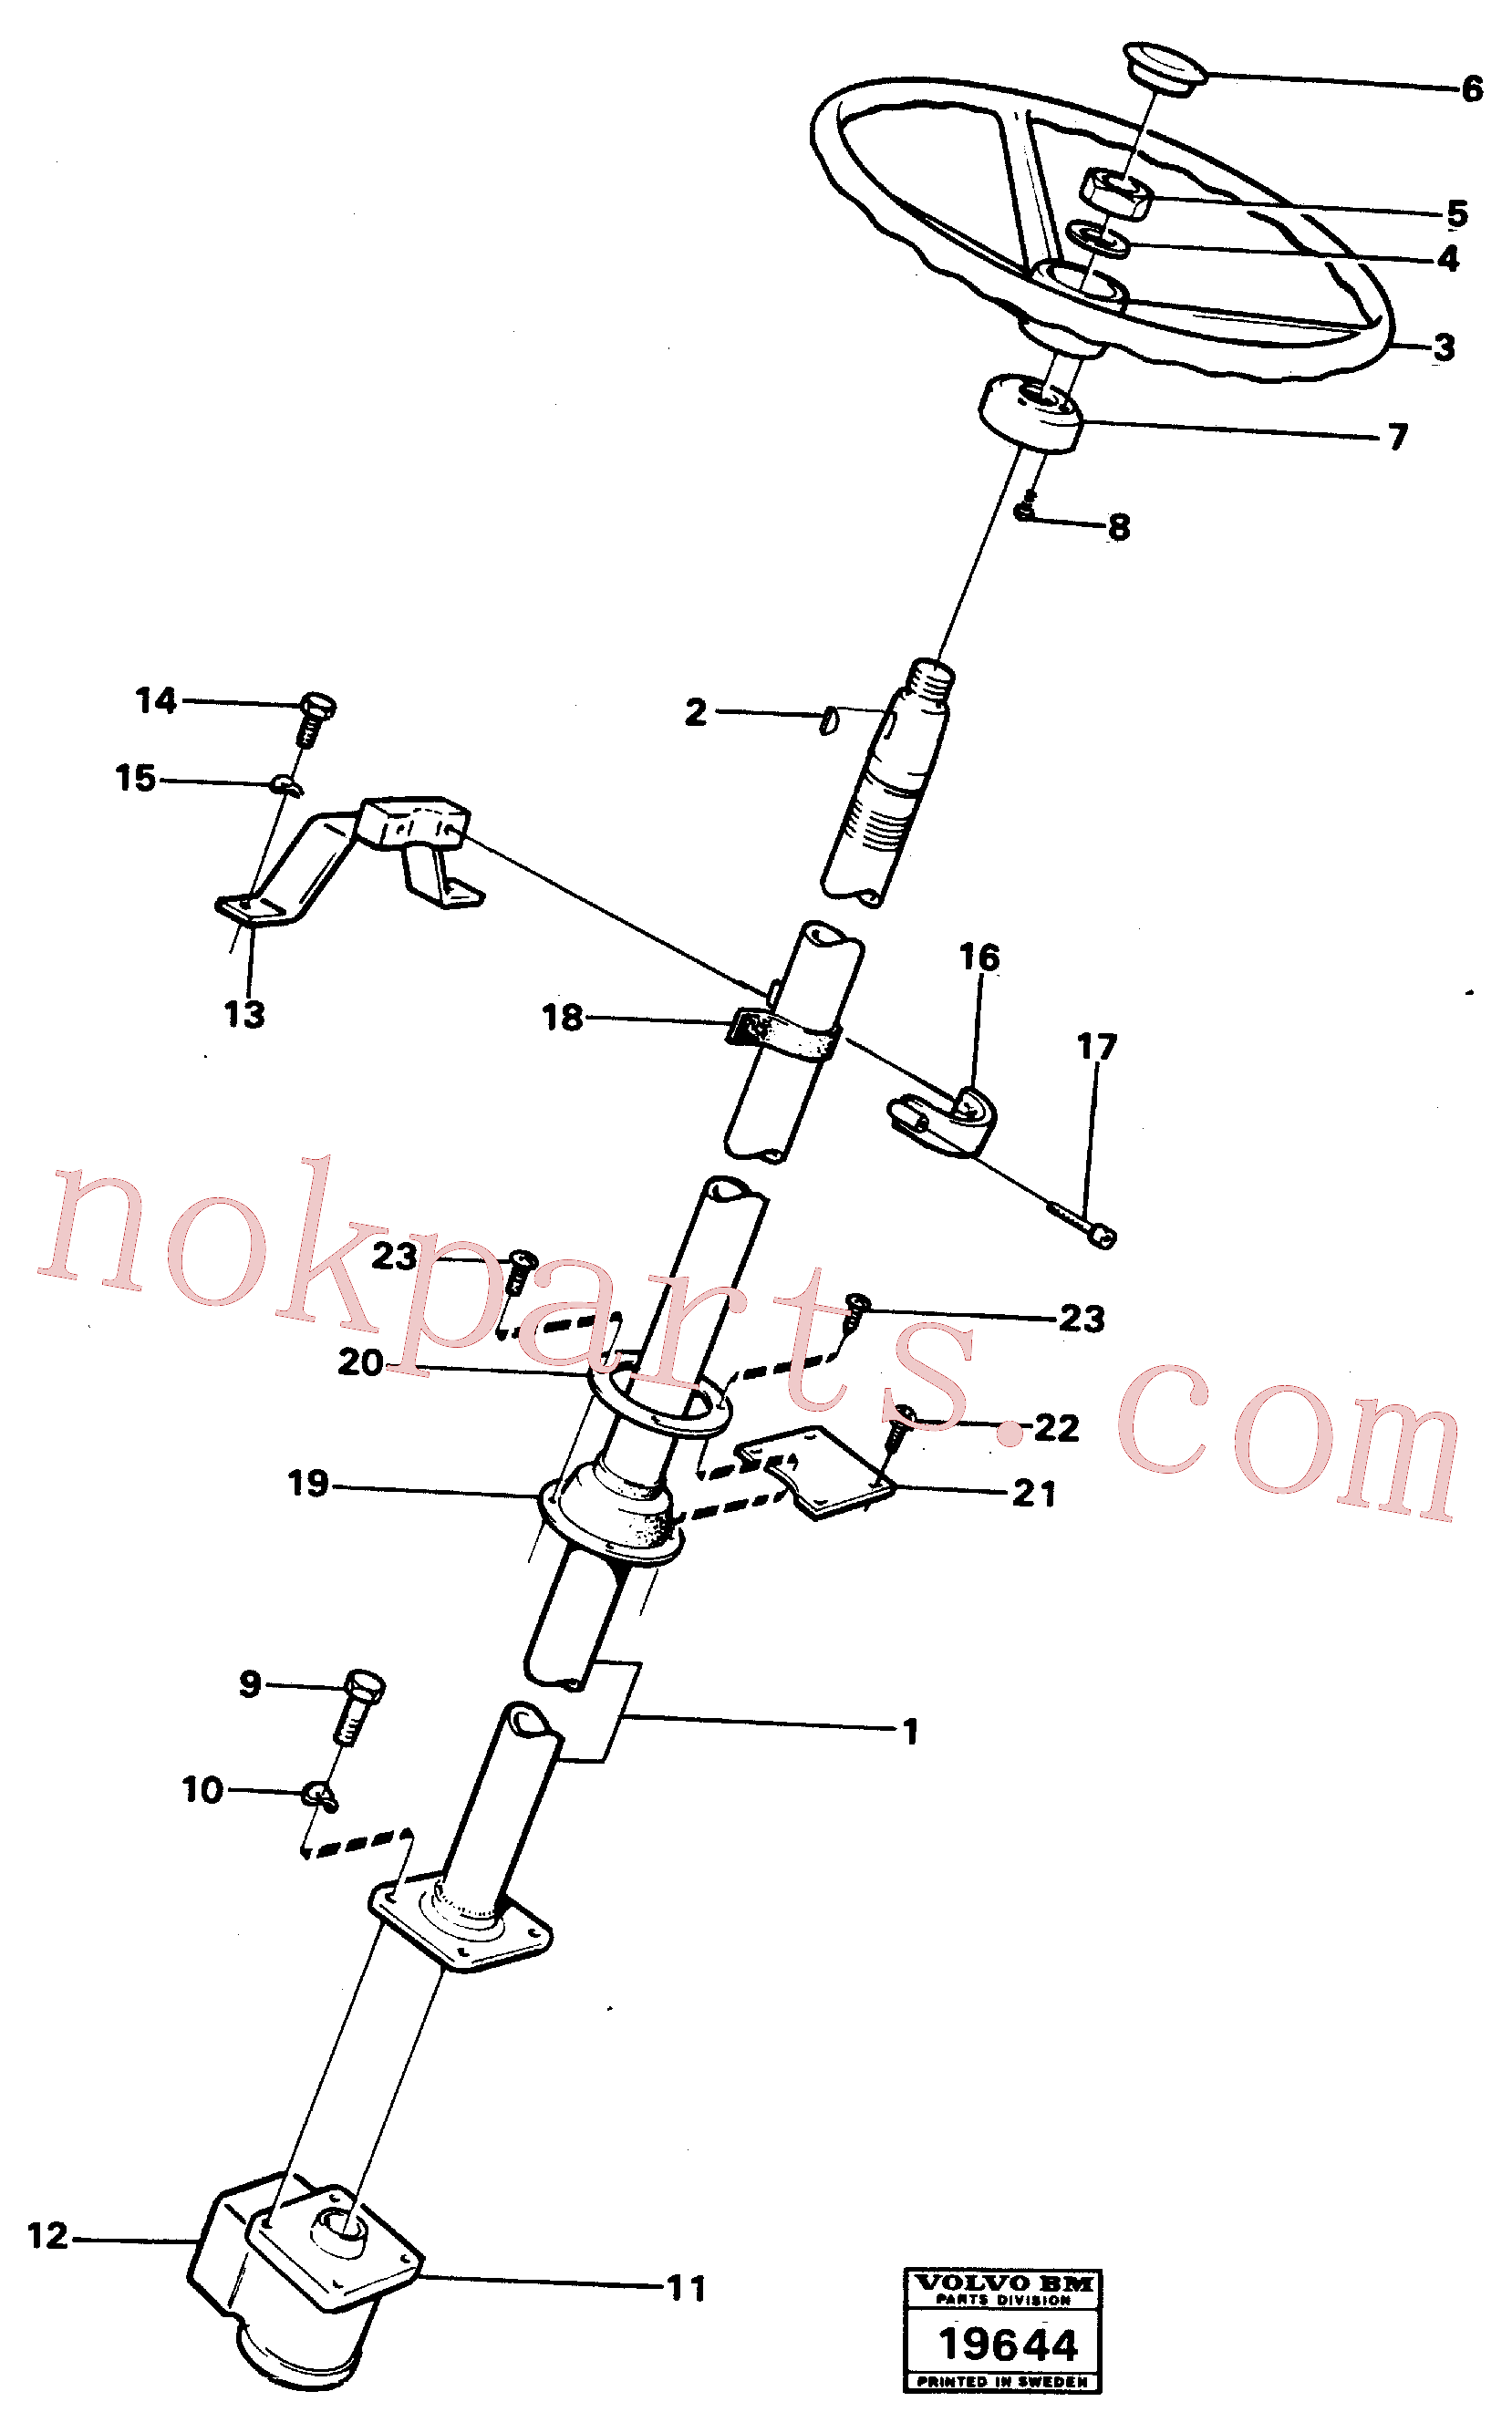 VOE13969514 for Volvo Steering column with fitting parts.(19644 assembly)